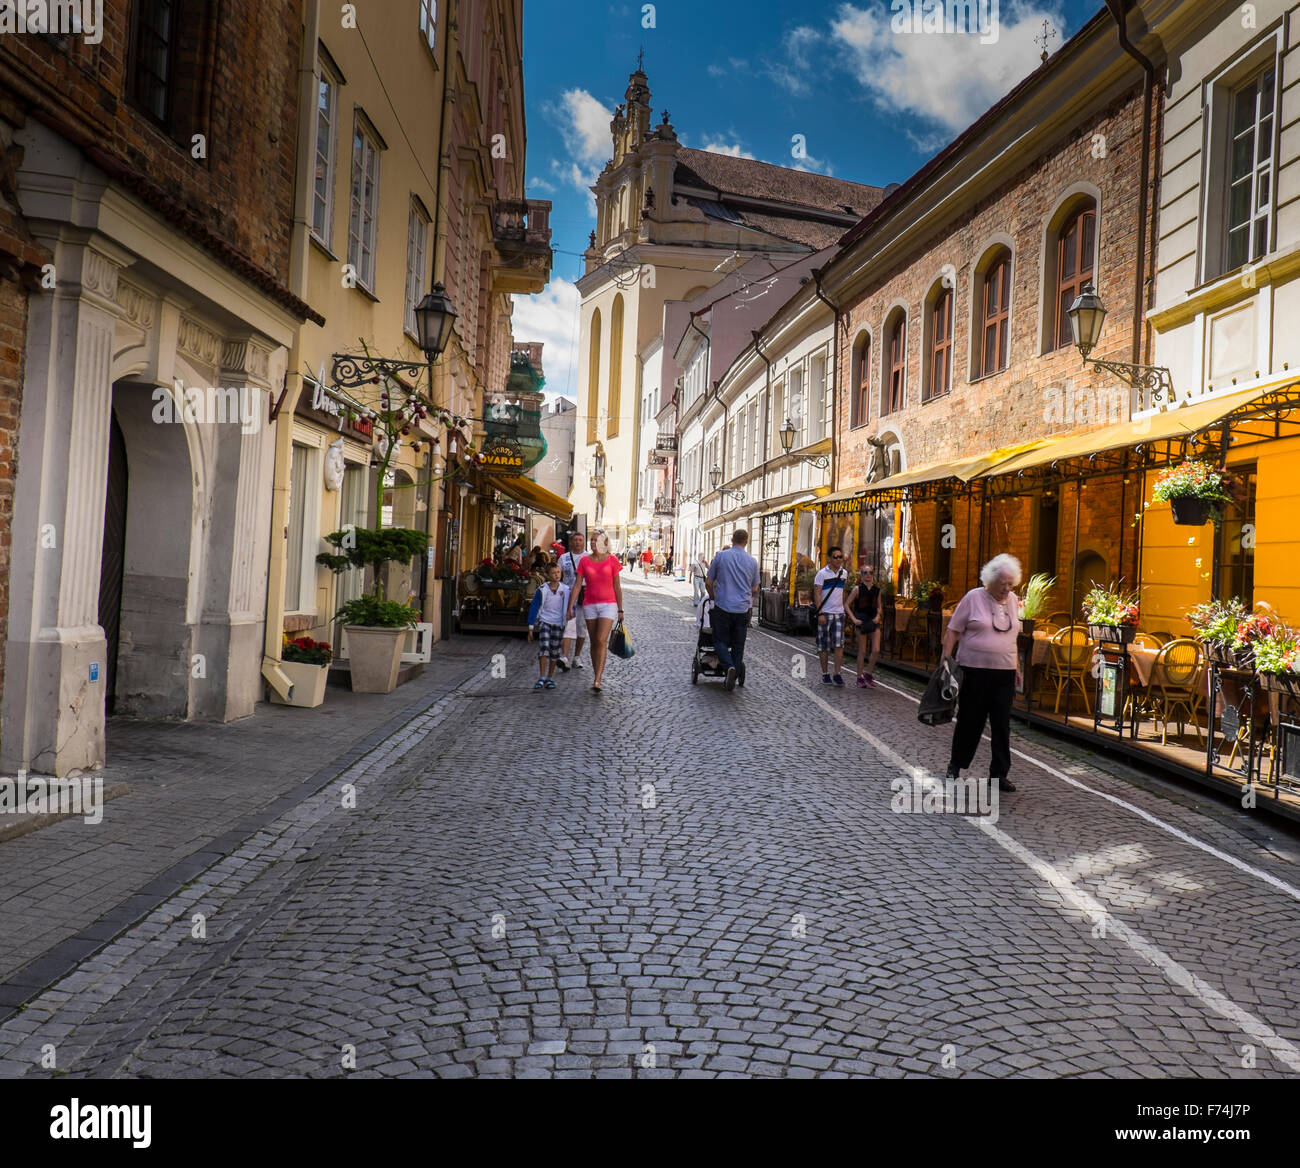 Cobbled Street in Vilnius, Lithuania - Stock Image